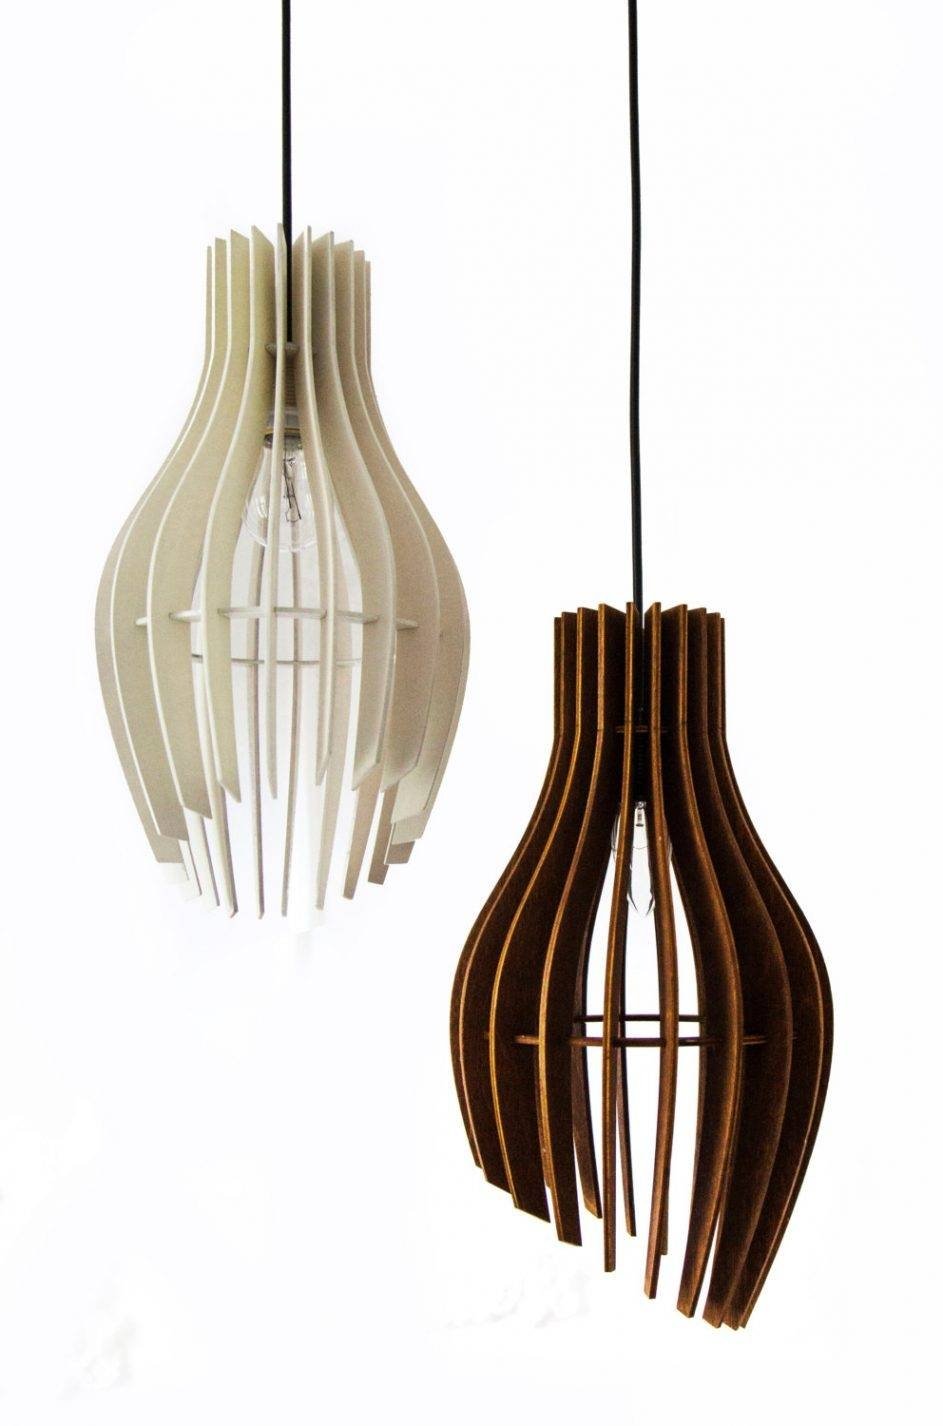 Excellent Wooden Pendant Lights 43 Wood Pendant Lights Nz Malmo throughout Wooden Pendant Lights Melbourne (Image 9 of 15)